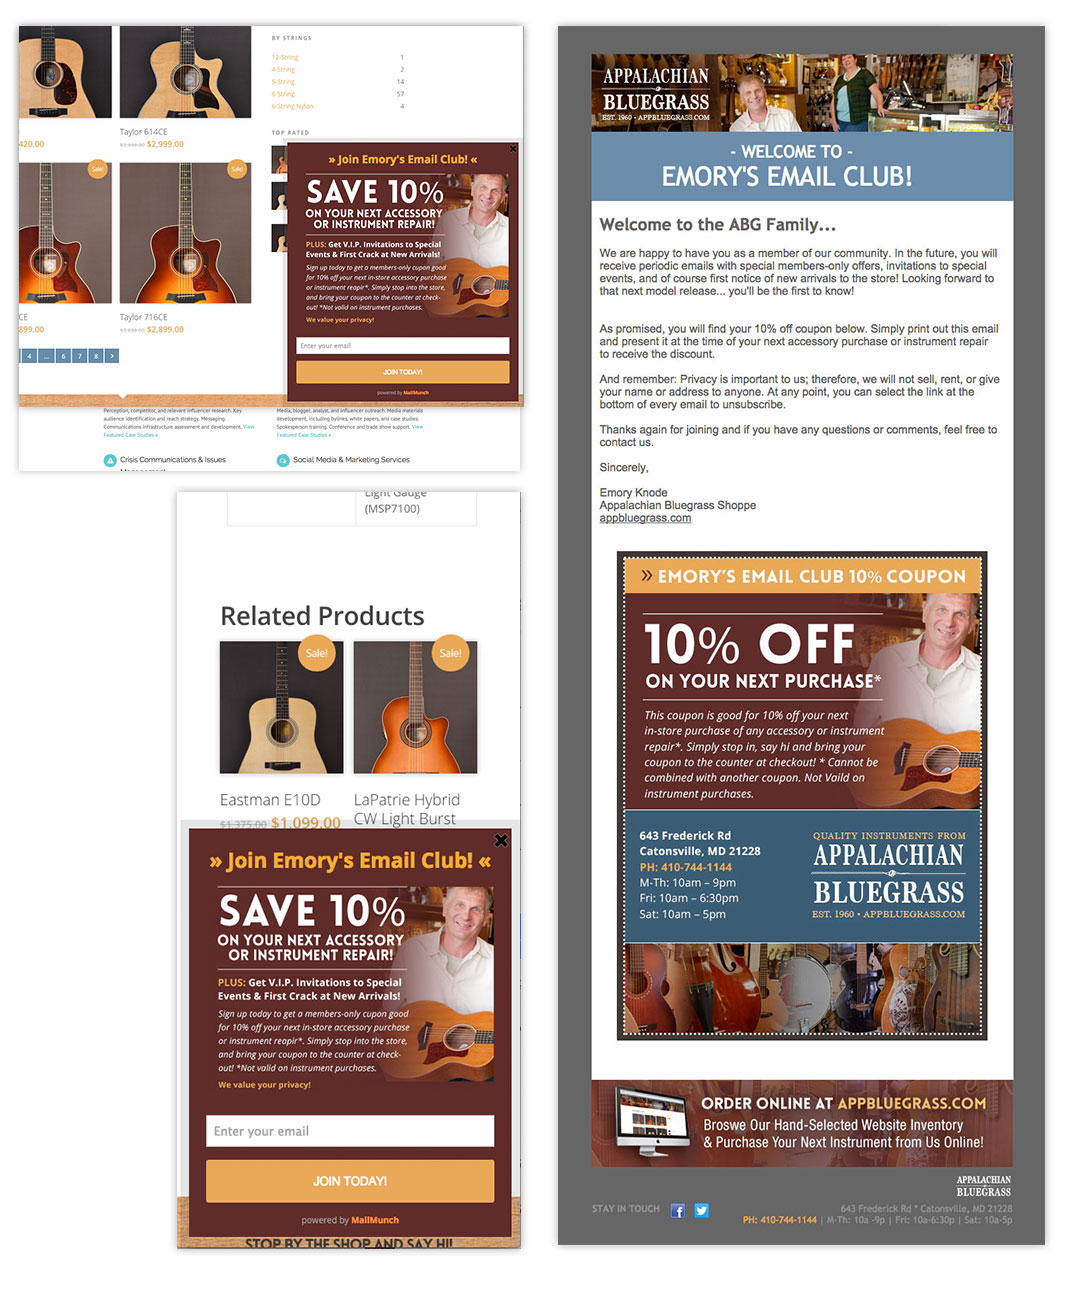 Appalachian Bluegrass Shoppe Mobile-friendly Responsive Email Template and Pop-Up by O'Dell Graphic Solutions